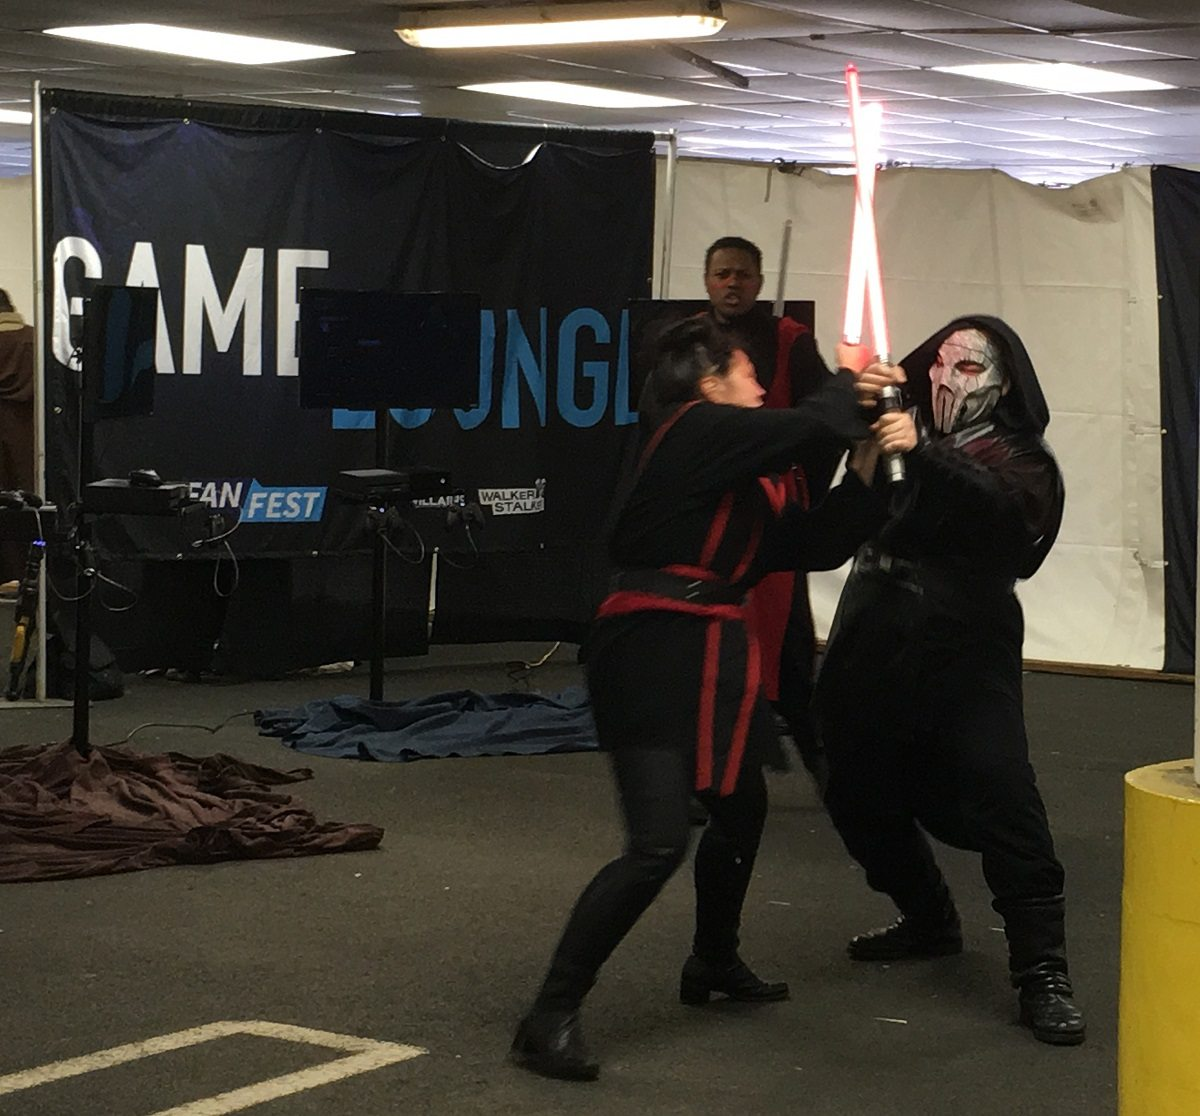 A former Jedi padawan battles her Sith lord for freedom!